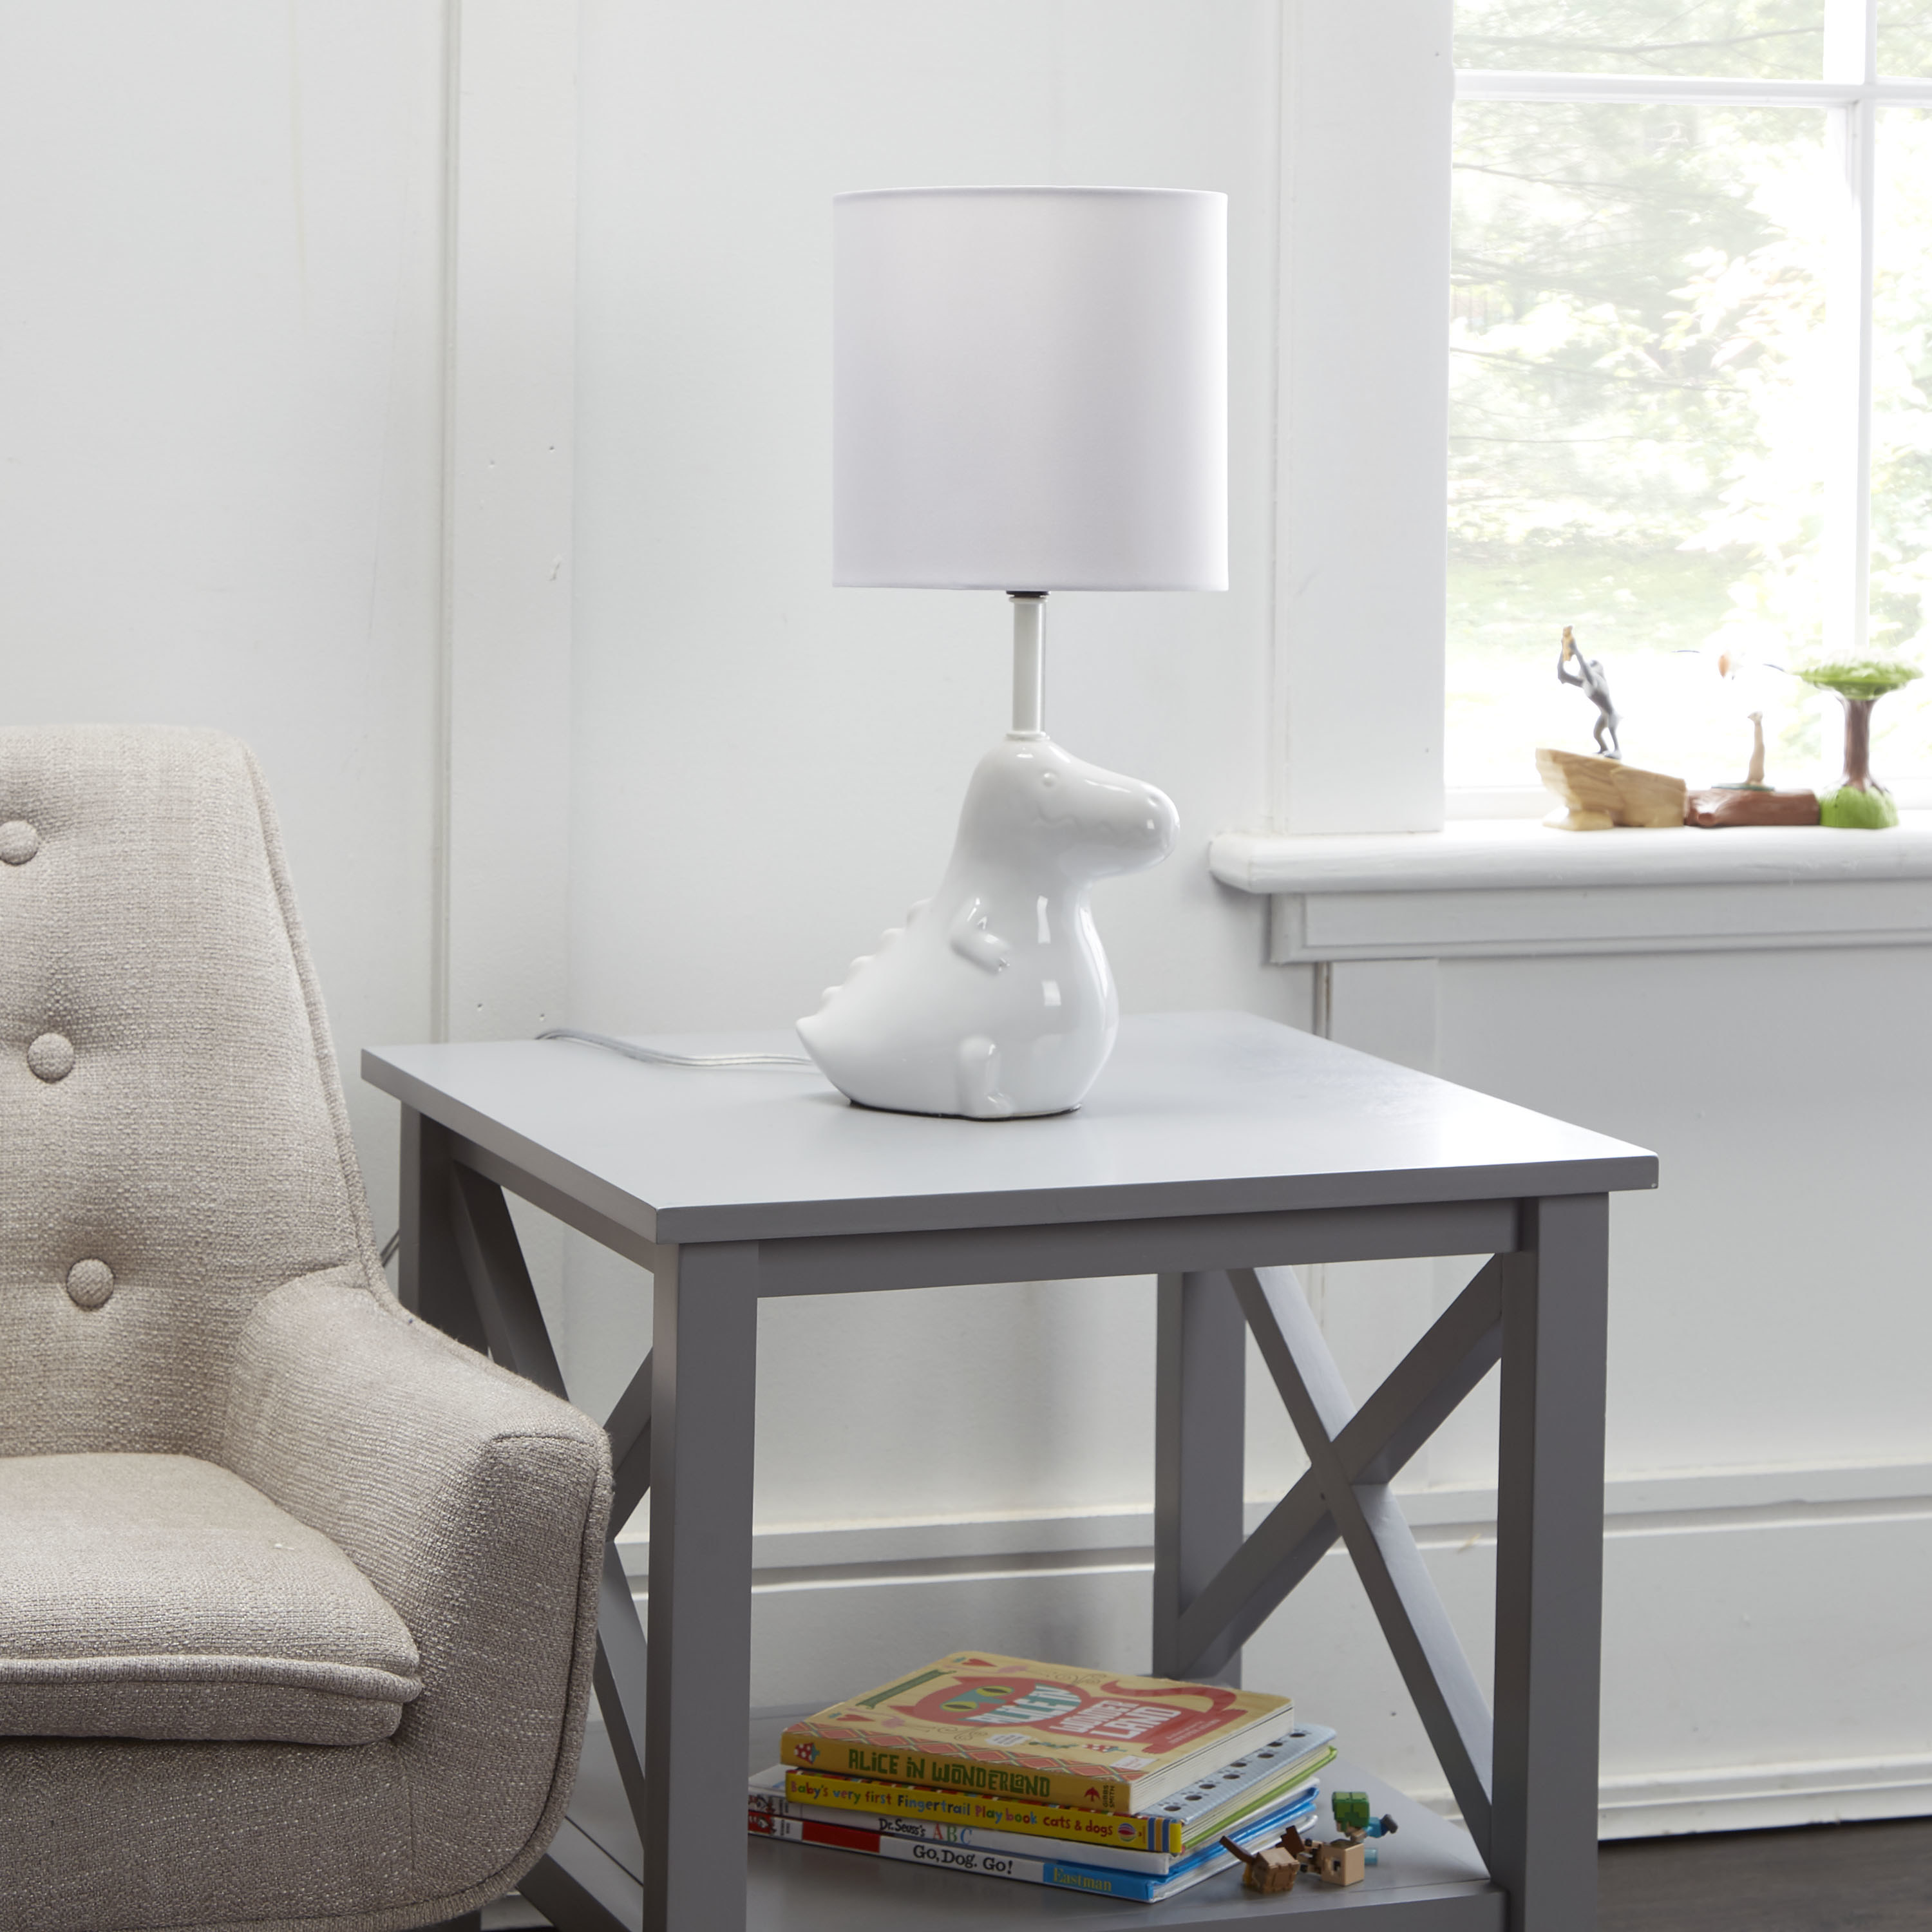 The white dinosaur lamp on an end table